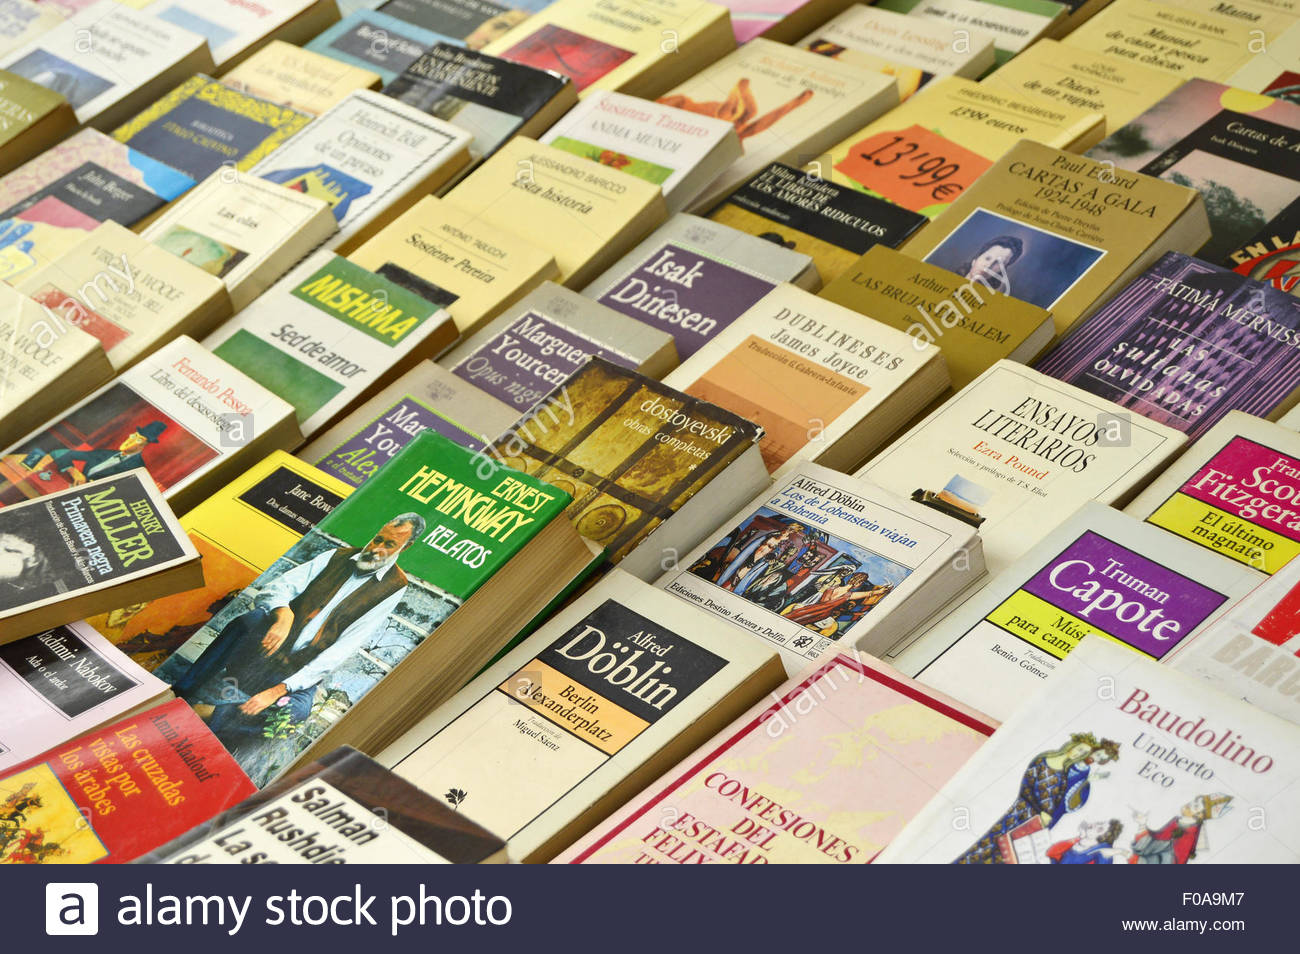 Used secondhand books displayed at flea market in Barcelona Spain Europe. - Stock Image